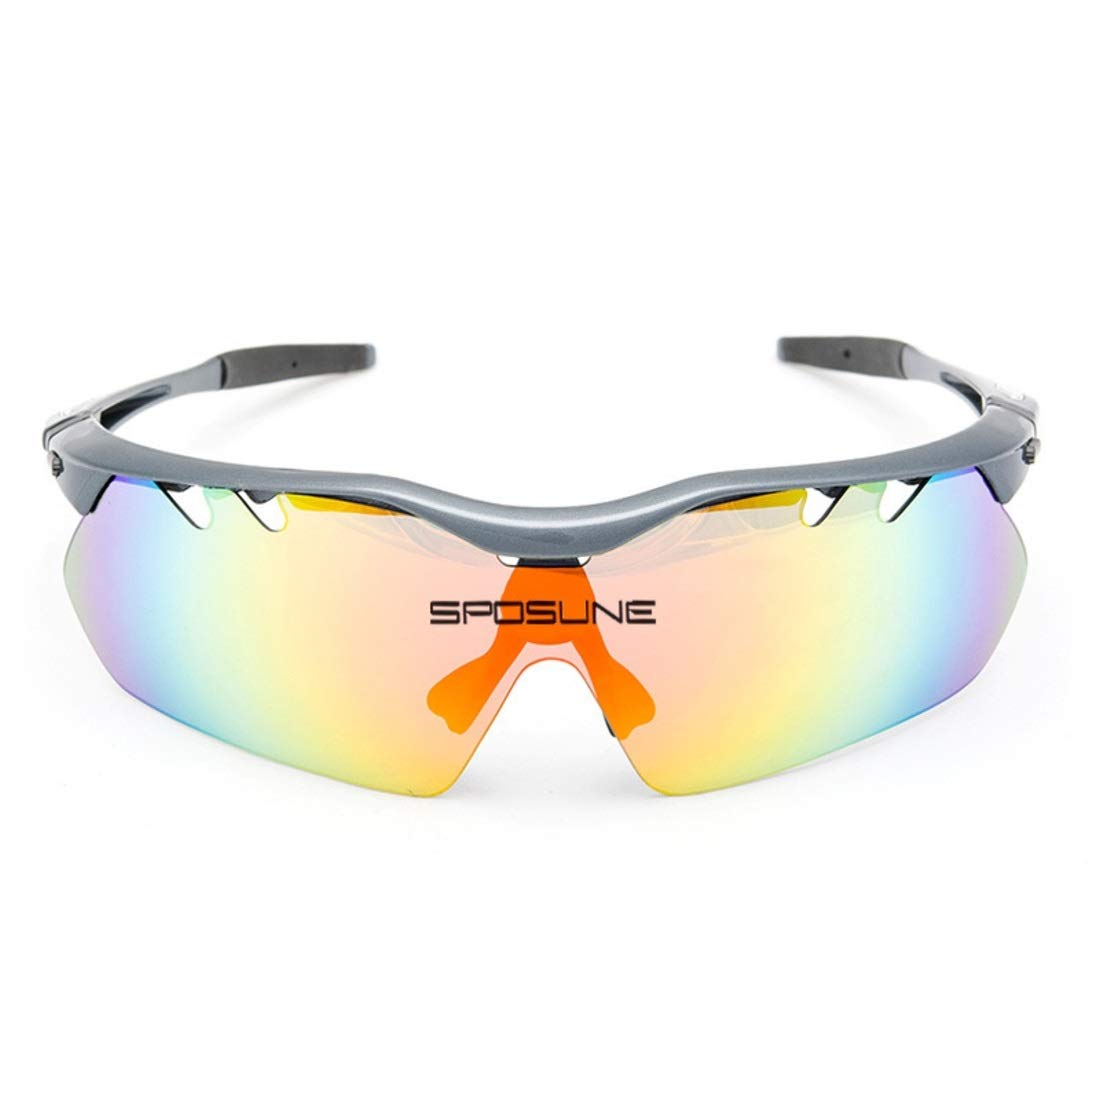 BAOYIT Riding Glasses Outdoor Mountain Bike Eye Protection Sports Sunglasses for Women Men (Color : Gray) by BAOYIT